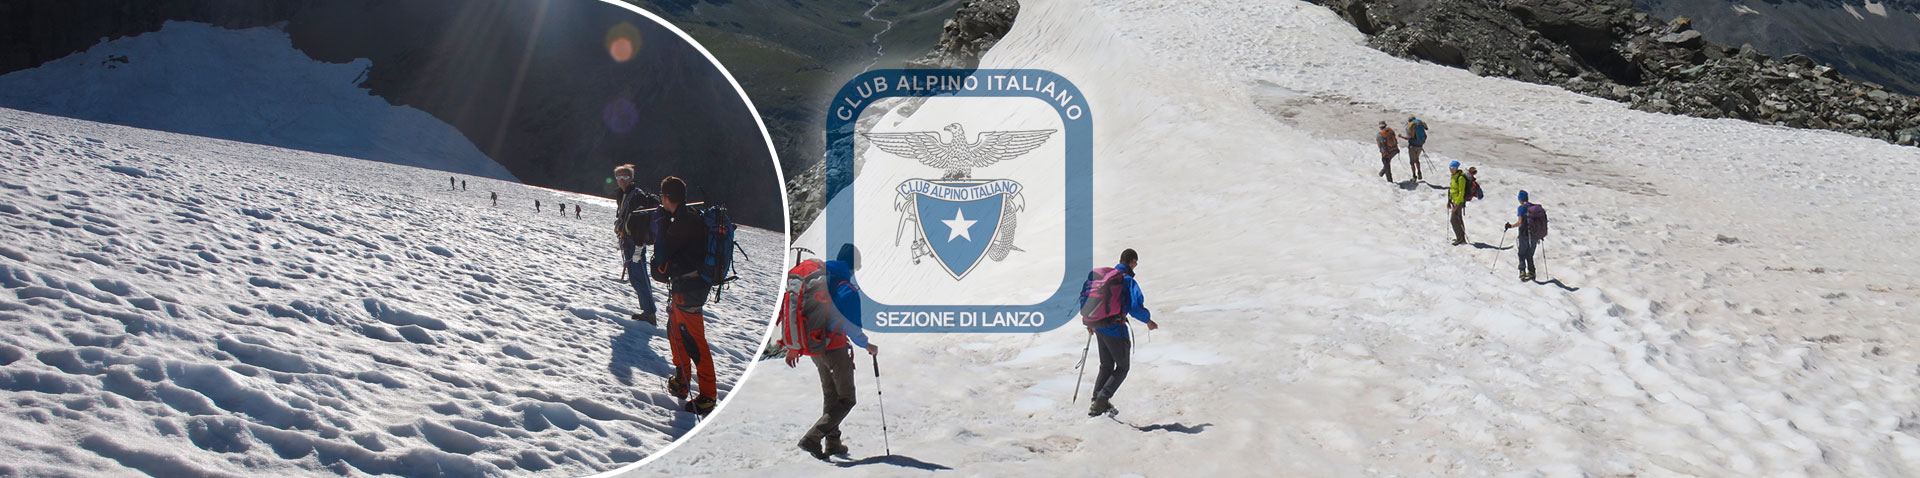 slide-hp_alpinismo.jpg